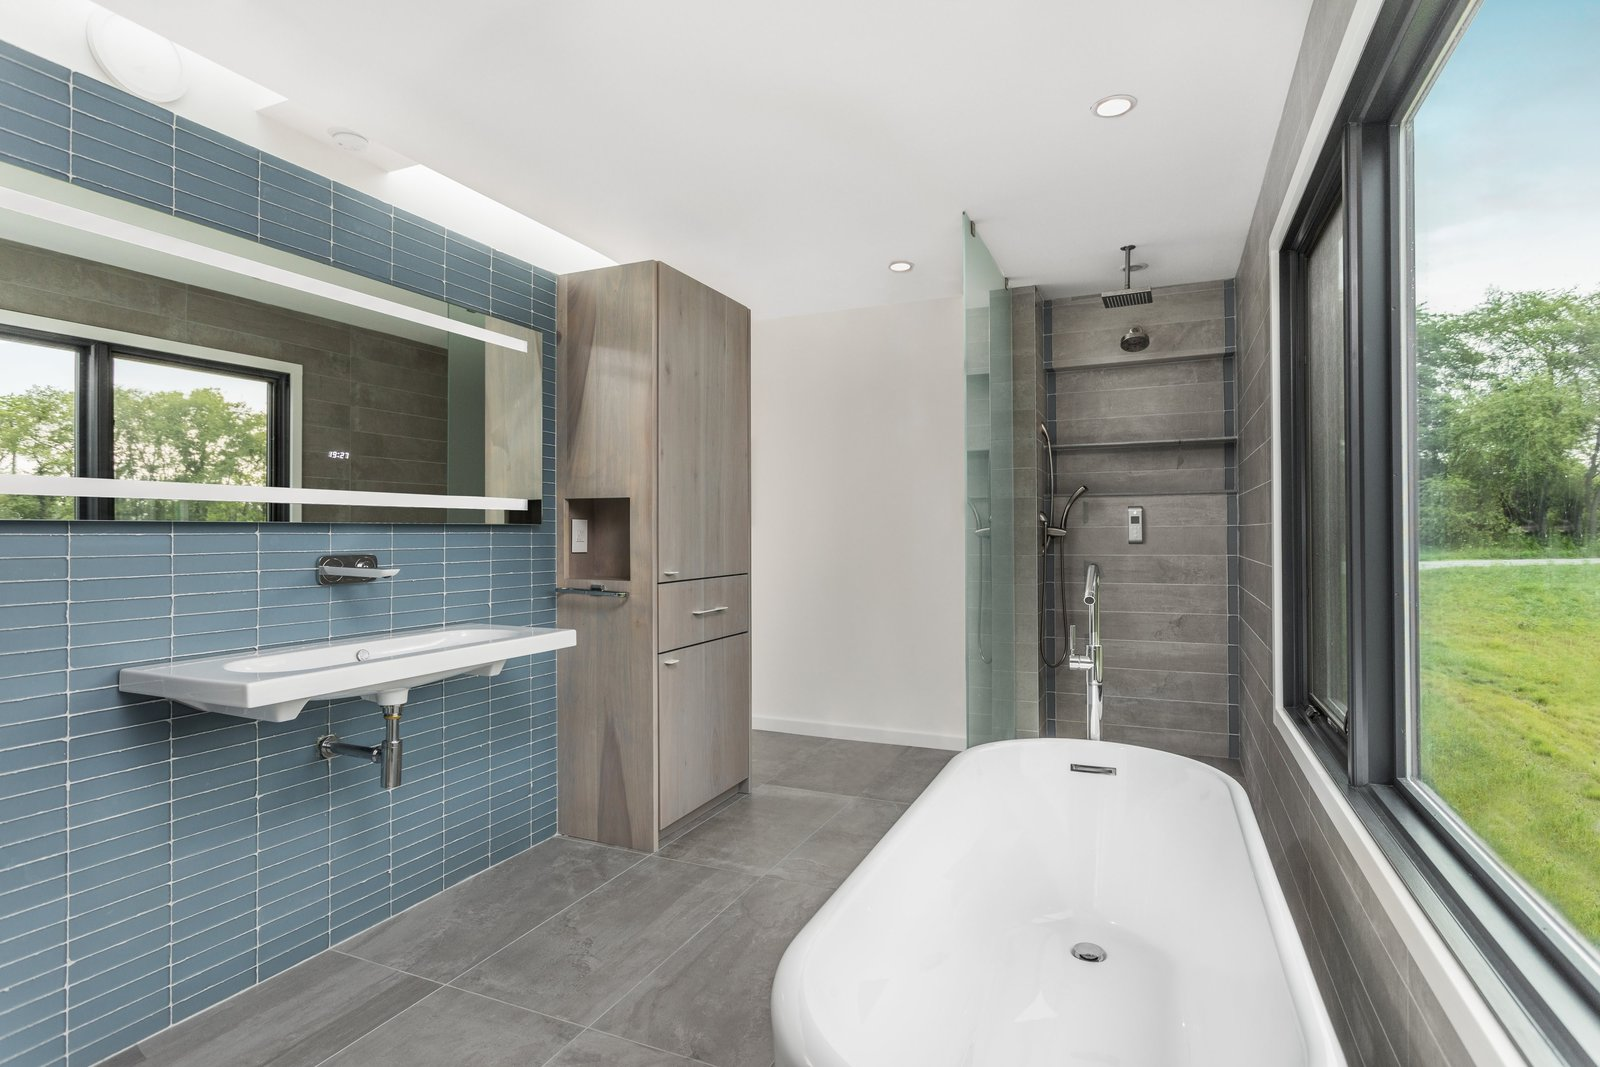 Bath Room, Freestanding Tub, Ceramic Tile Floor, Slate Floor, Wall Mount Sink, Glass Tile Wall, Open Shower, and Ceiling Lighting The modern bathroom with an open shower and simple tile.   Copperwood by Kevin Swan